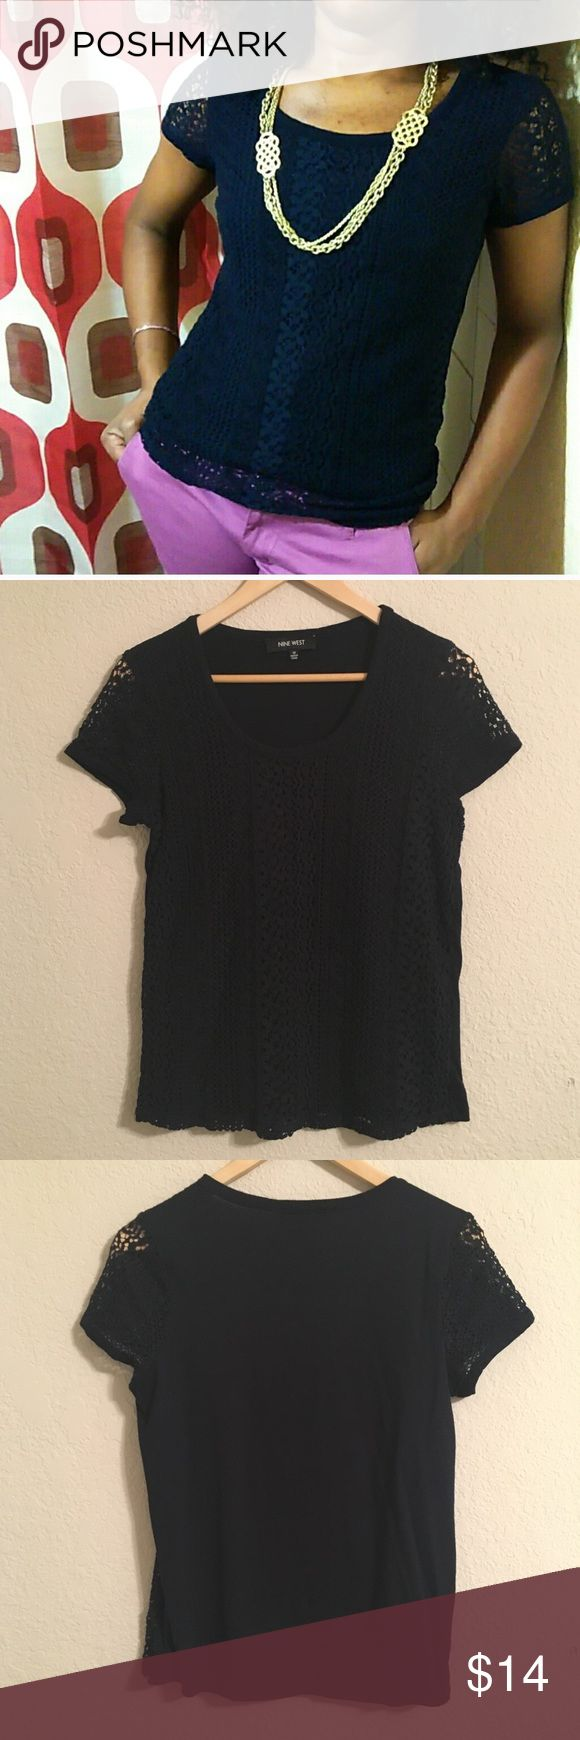 Nine West Navy Lace Tee Navy knit lace tee. Make an offer! 15% off bundles of 2 or more items. Nine West Tops Tees - Short Sleeve